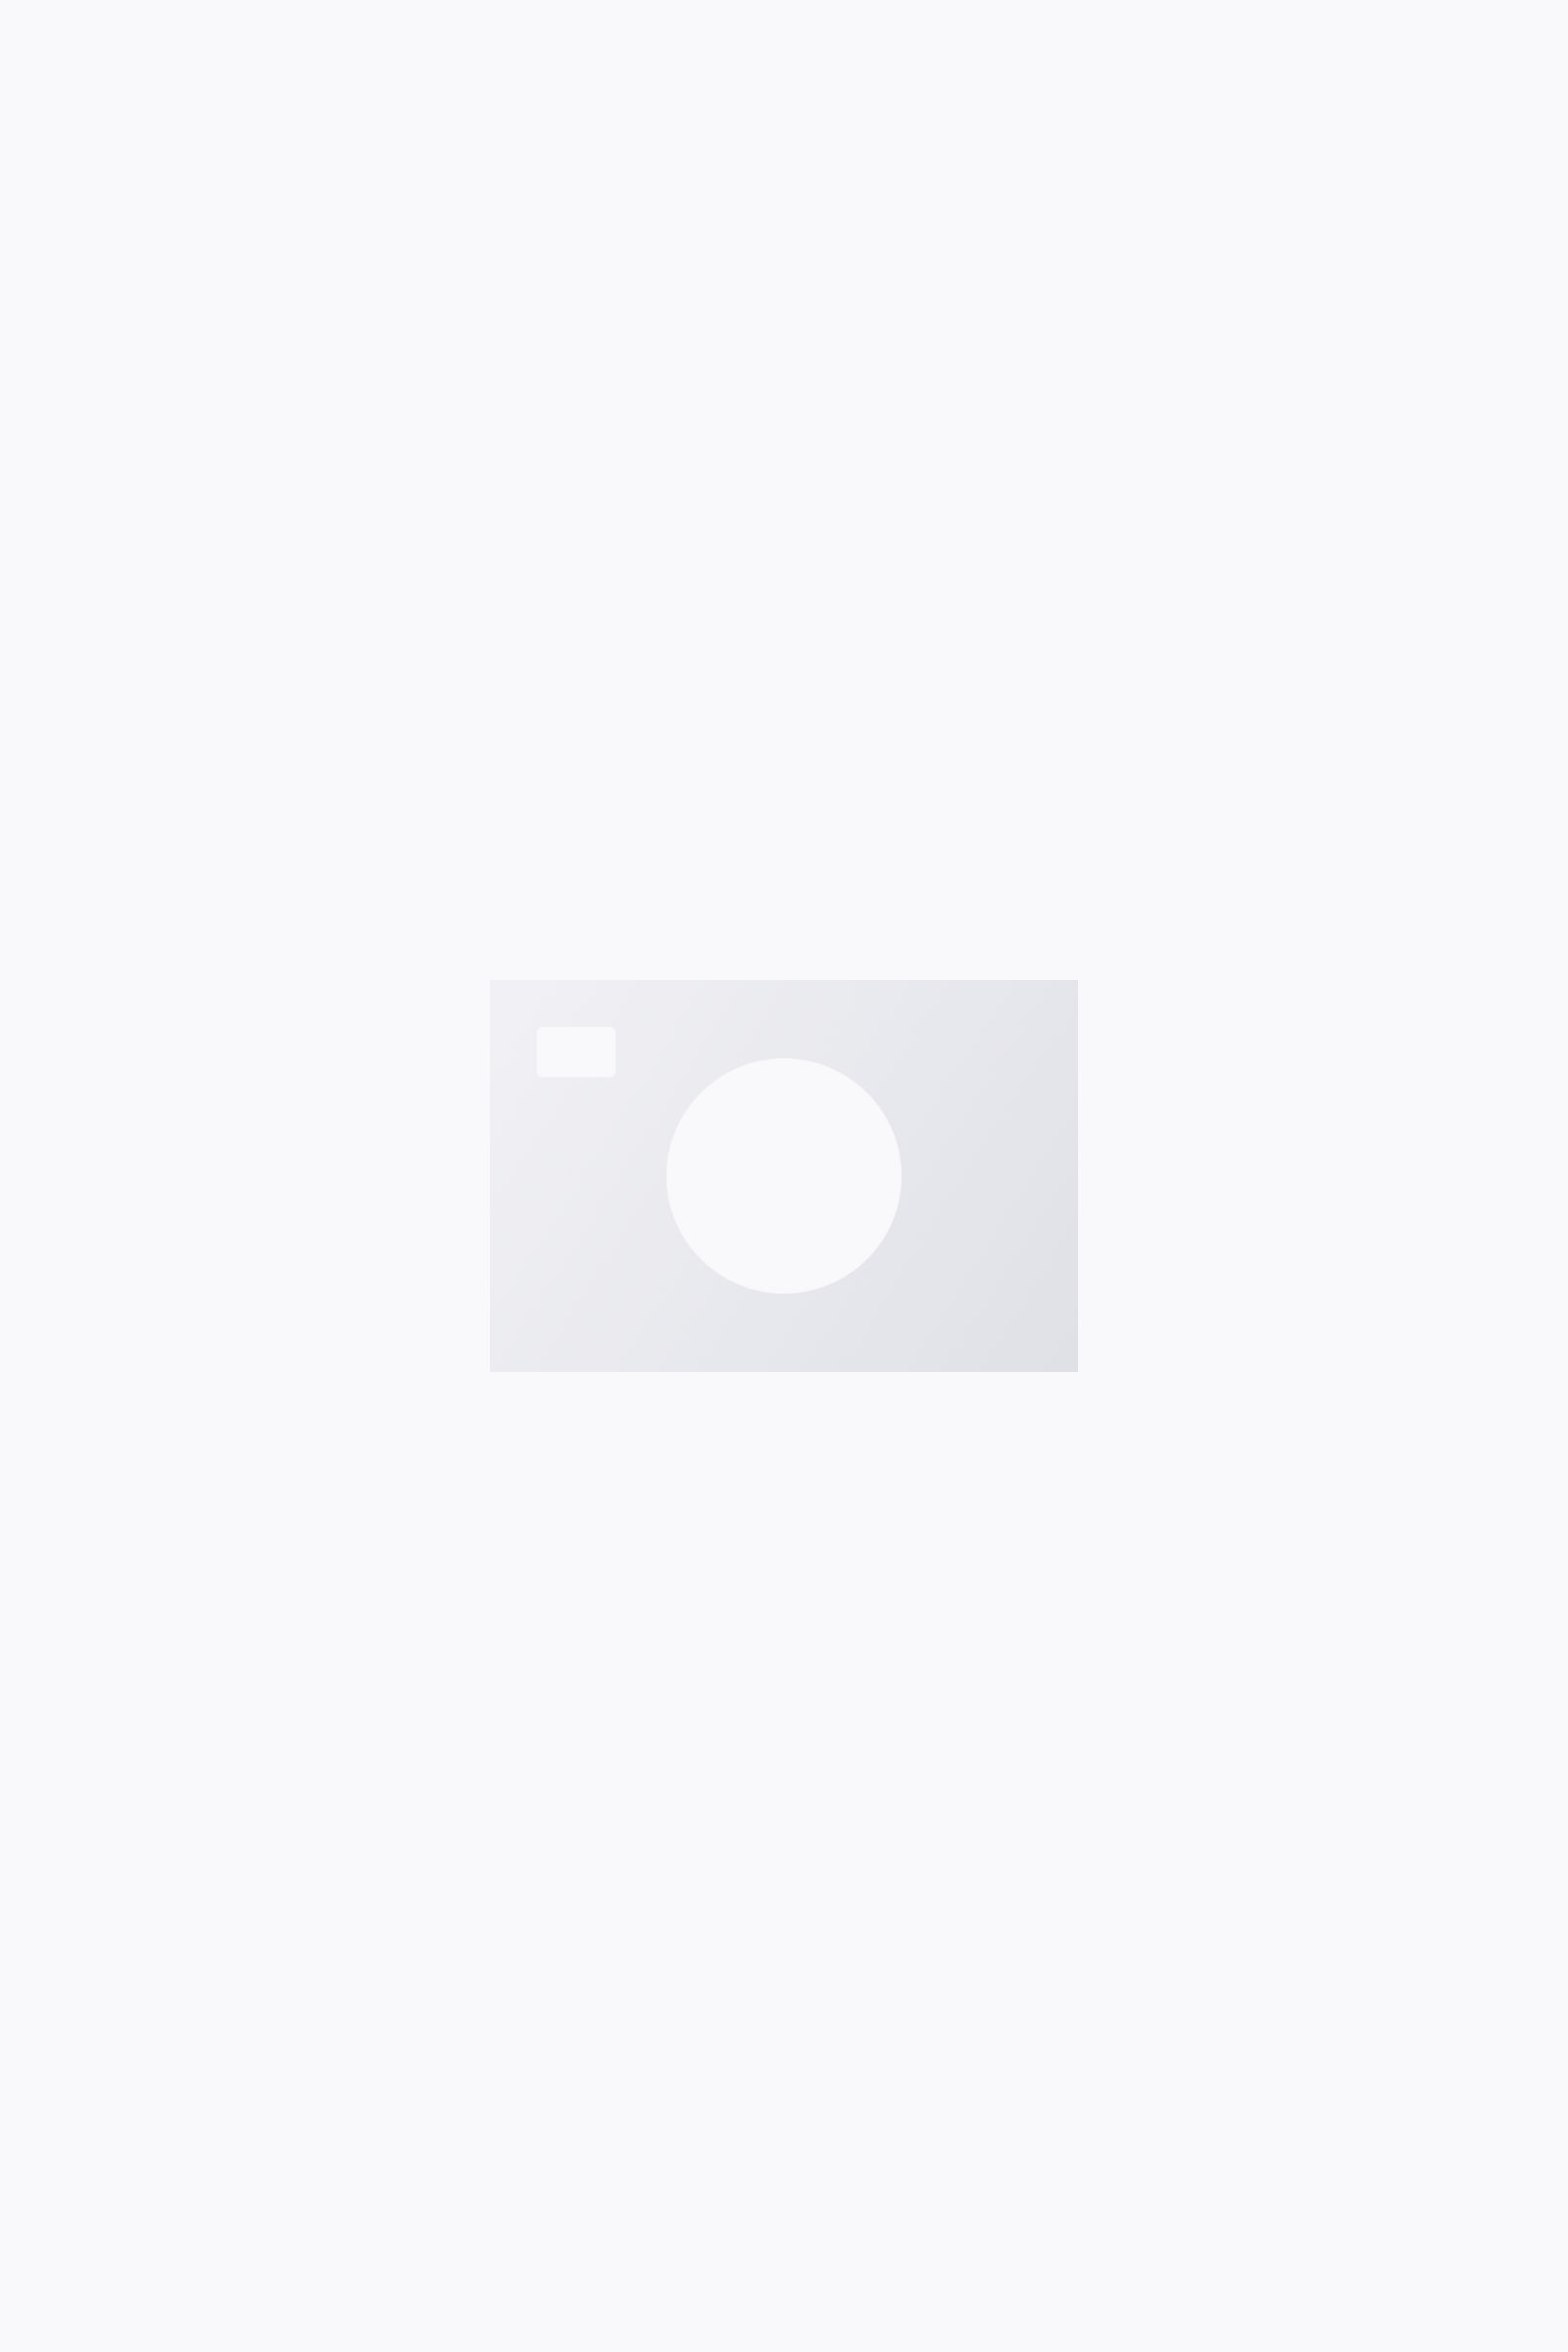 COS LEATHER BELT BAG,Yellow